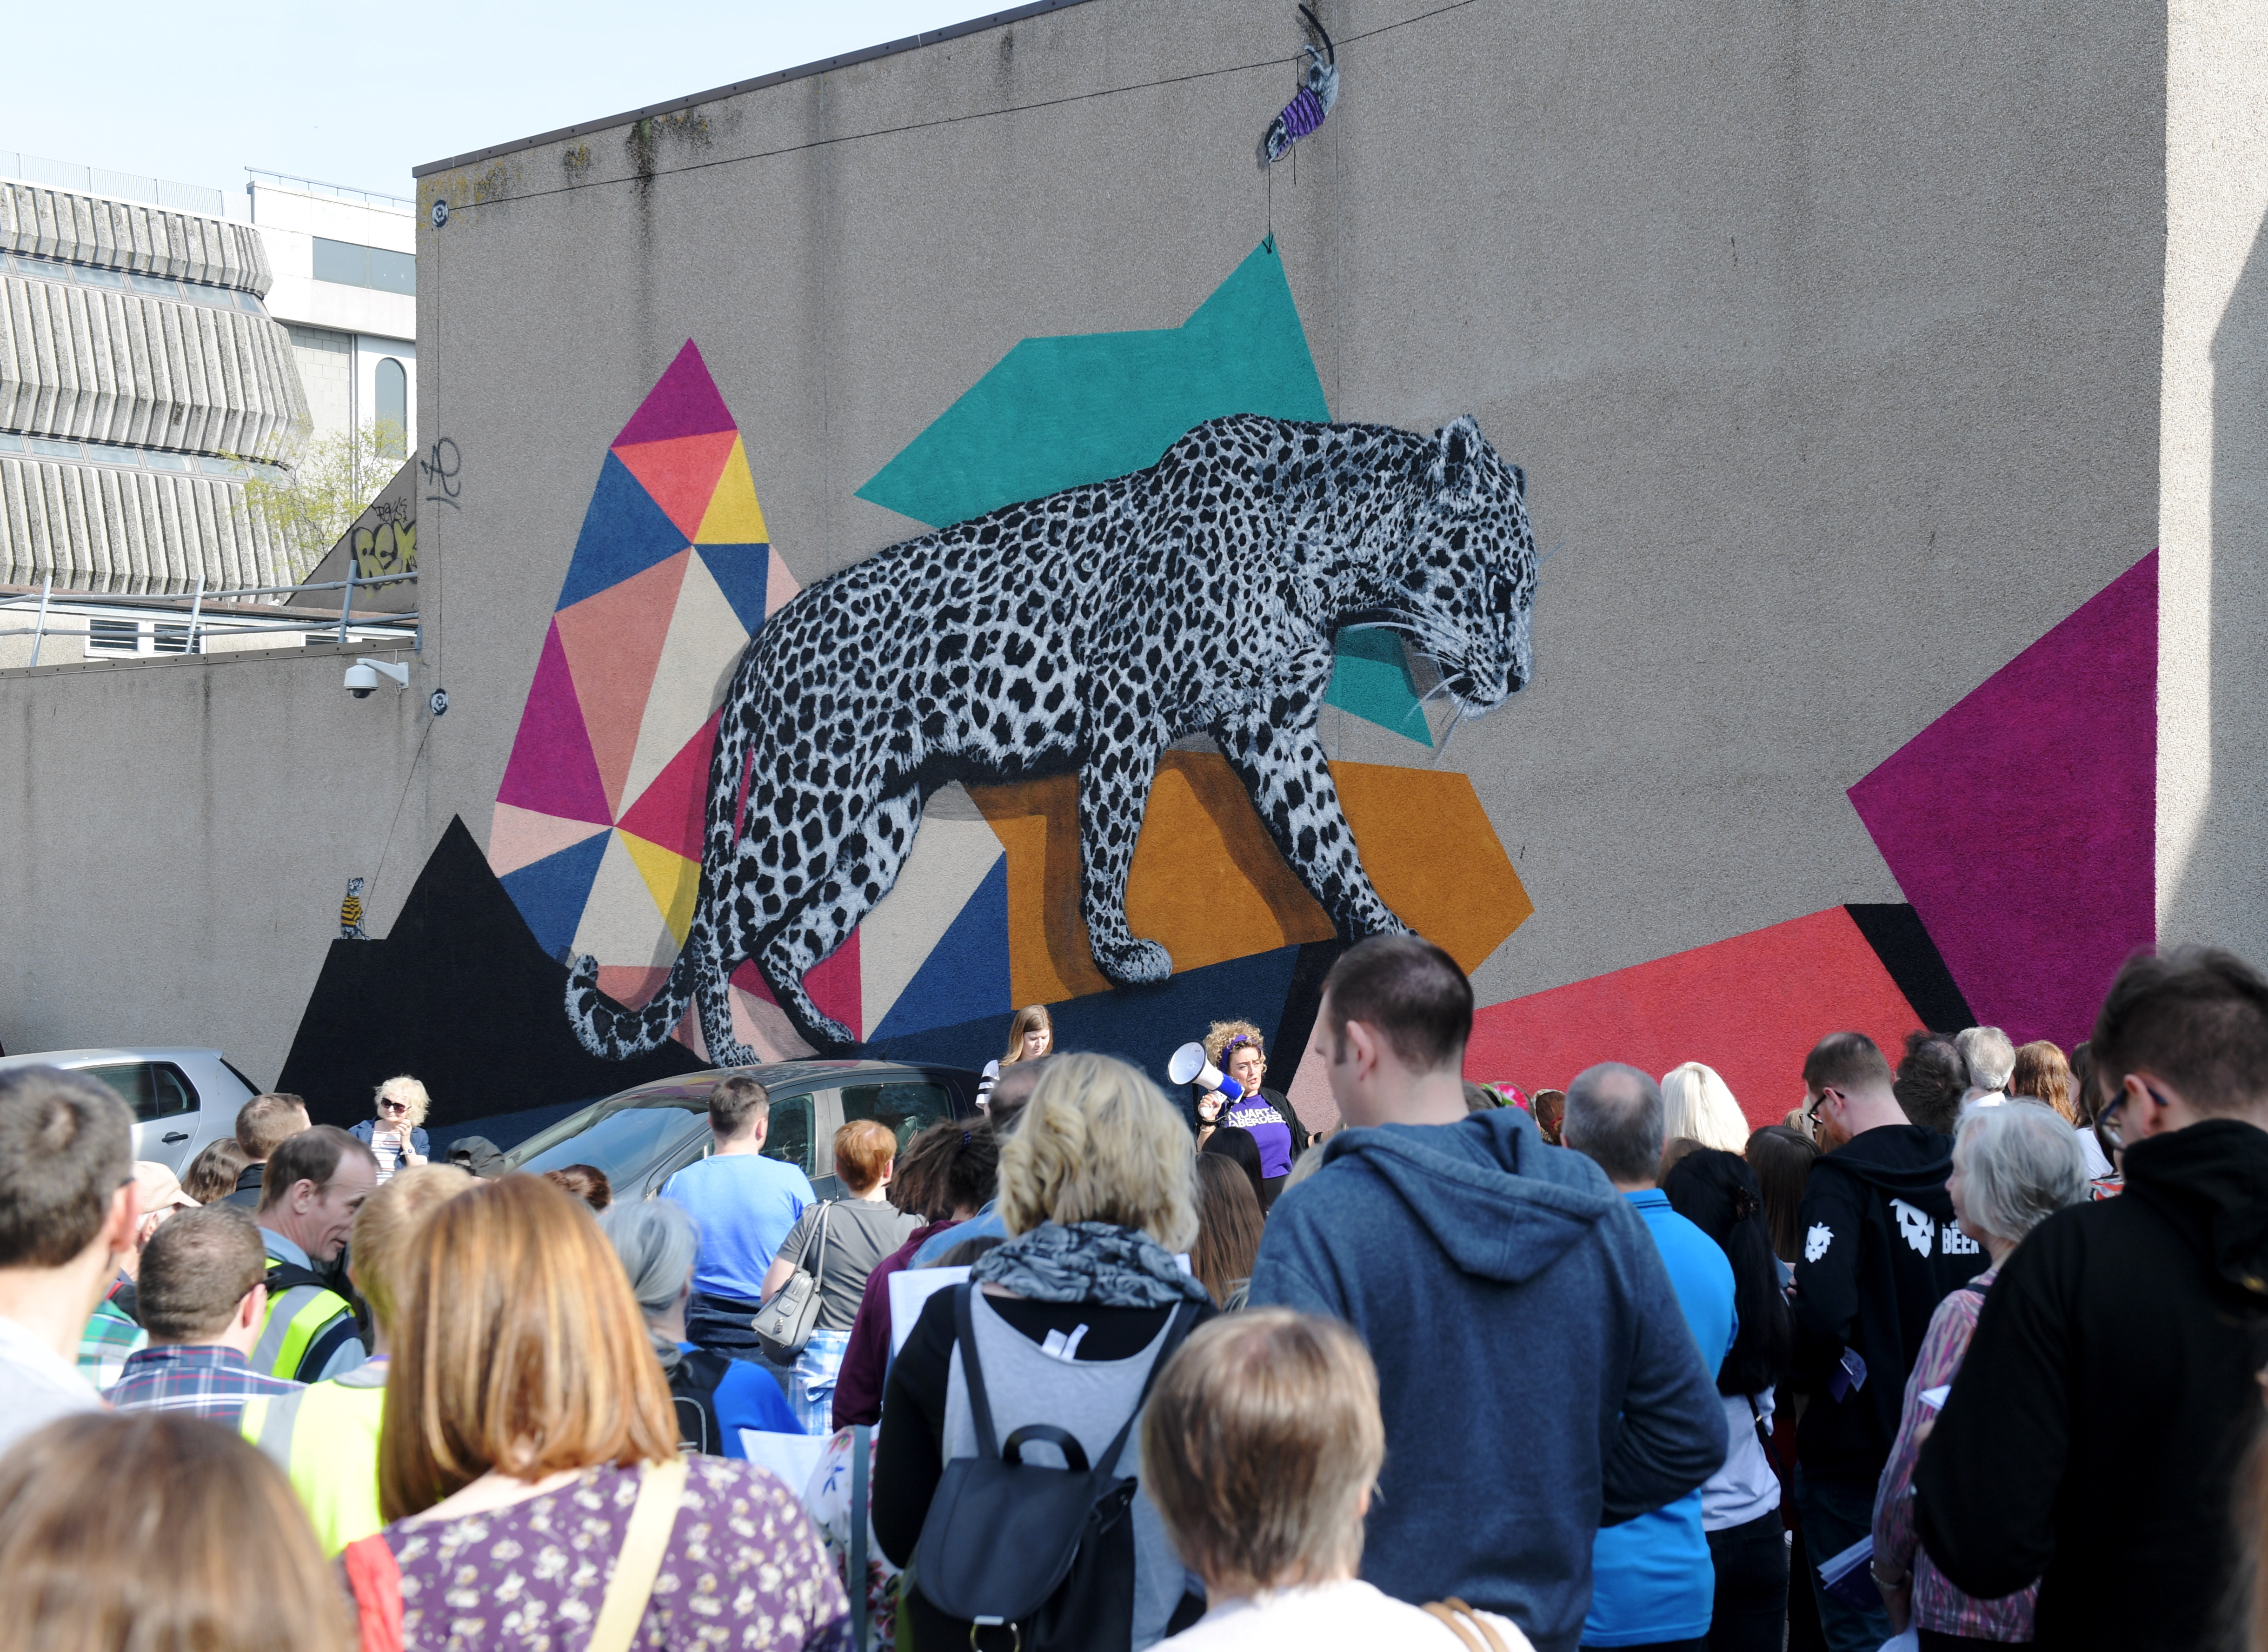 Aberdeen Inspired is behind the hugely popular Nuart festival